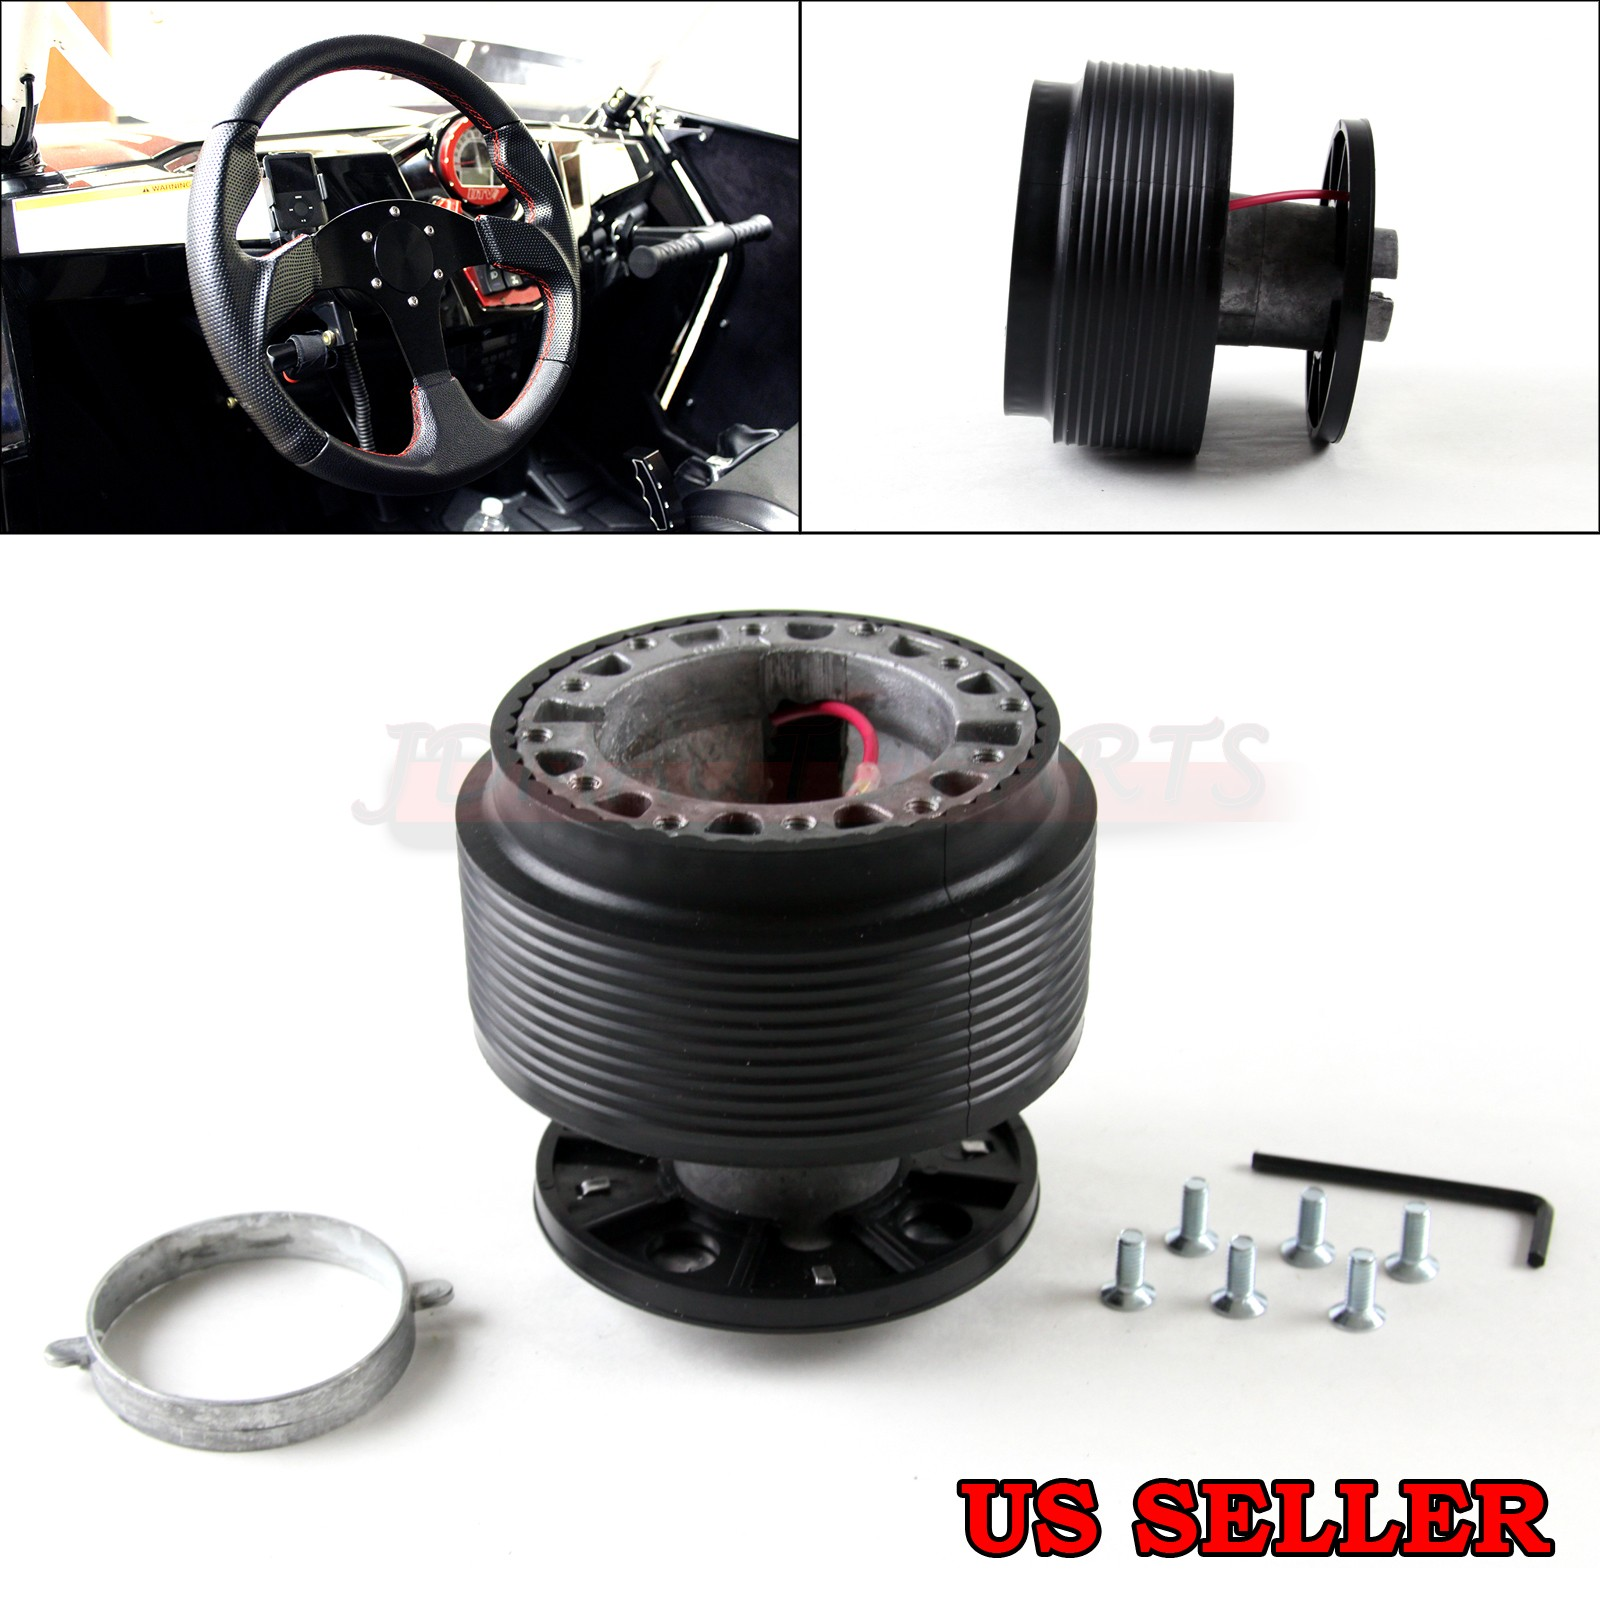 FOR ACURA INTEGRA DC BOLT AFTERMARKET STEERING WHEEL HUB - Aftermarket acura parts